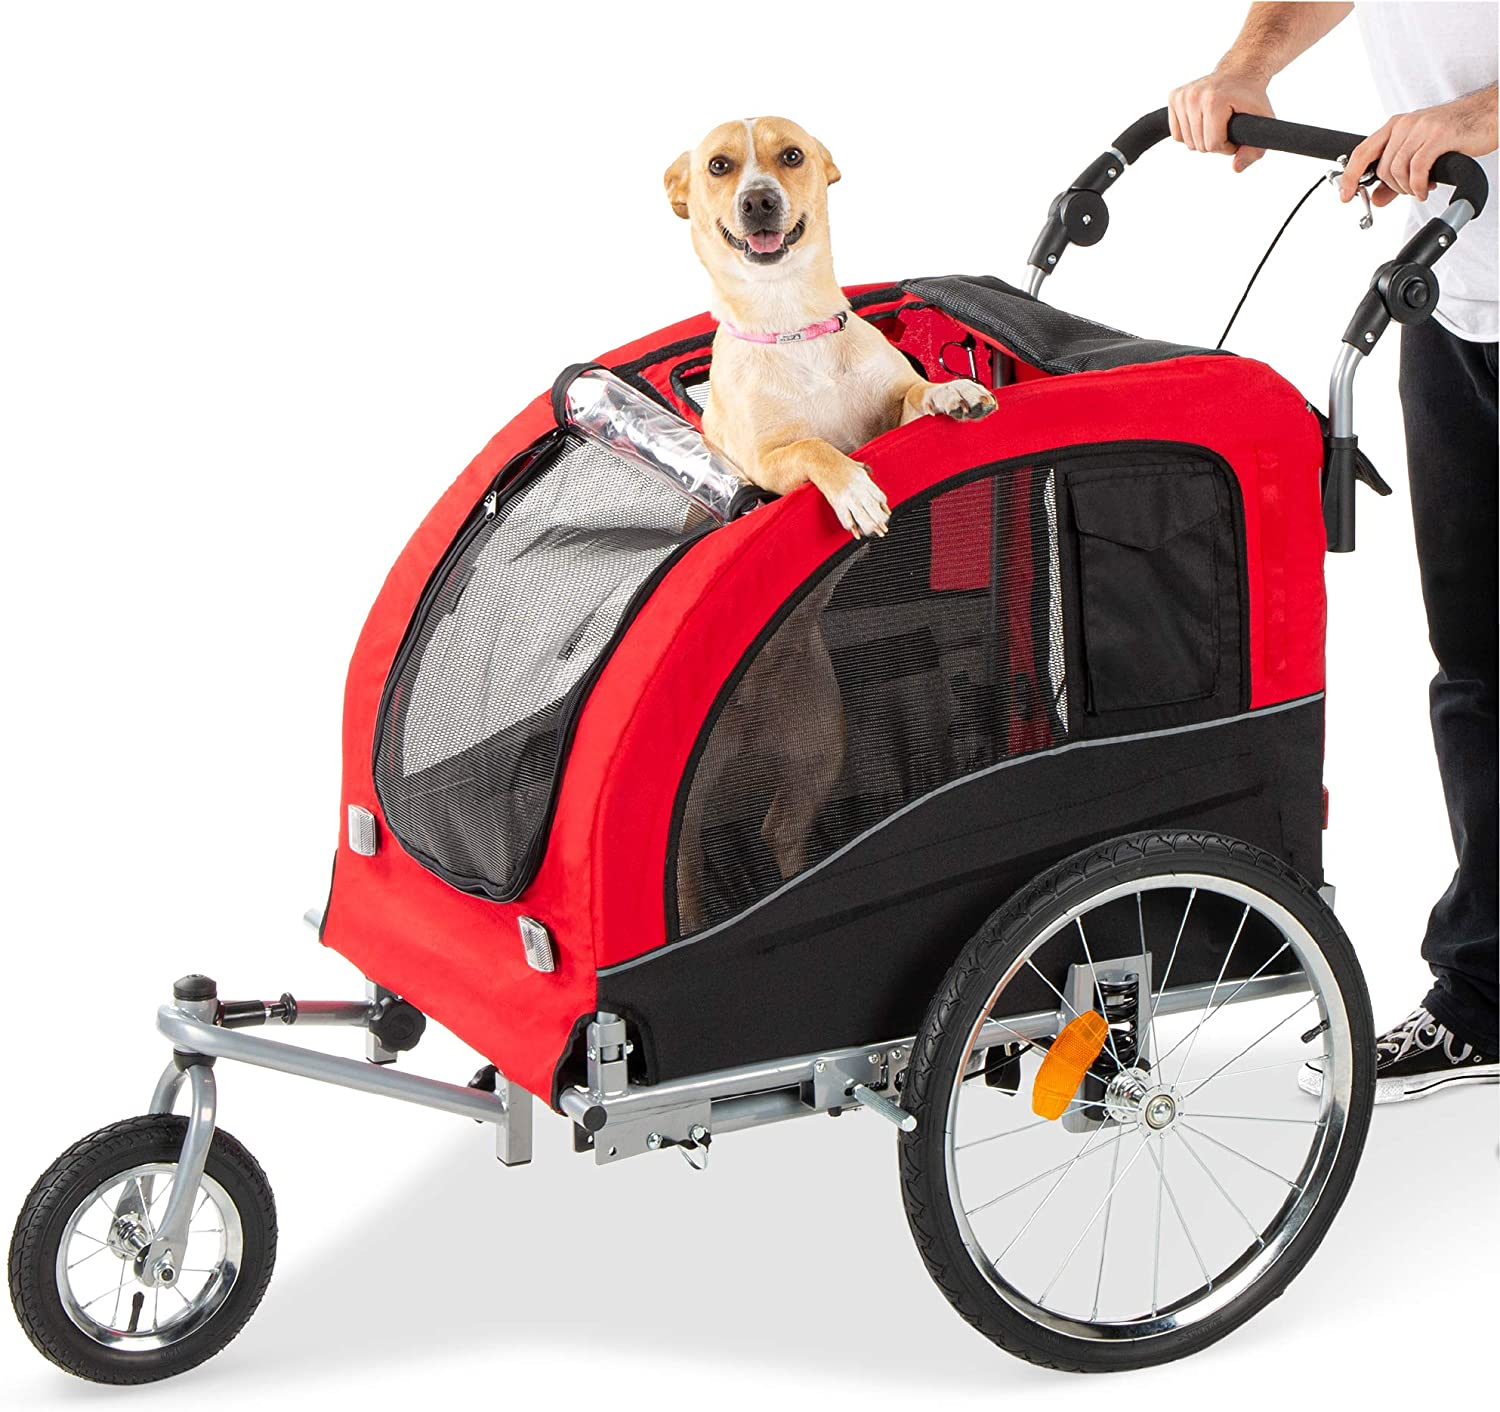 Best Choice Products 2-in-1 Pet Jacksonville Mall Stroller w Trailer and latest Hitc Bike